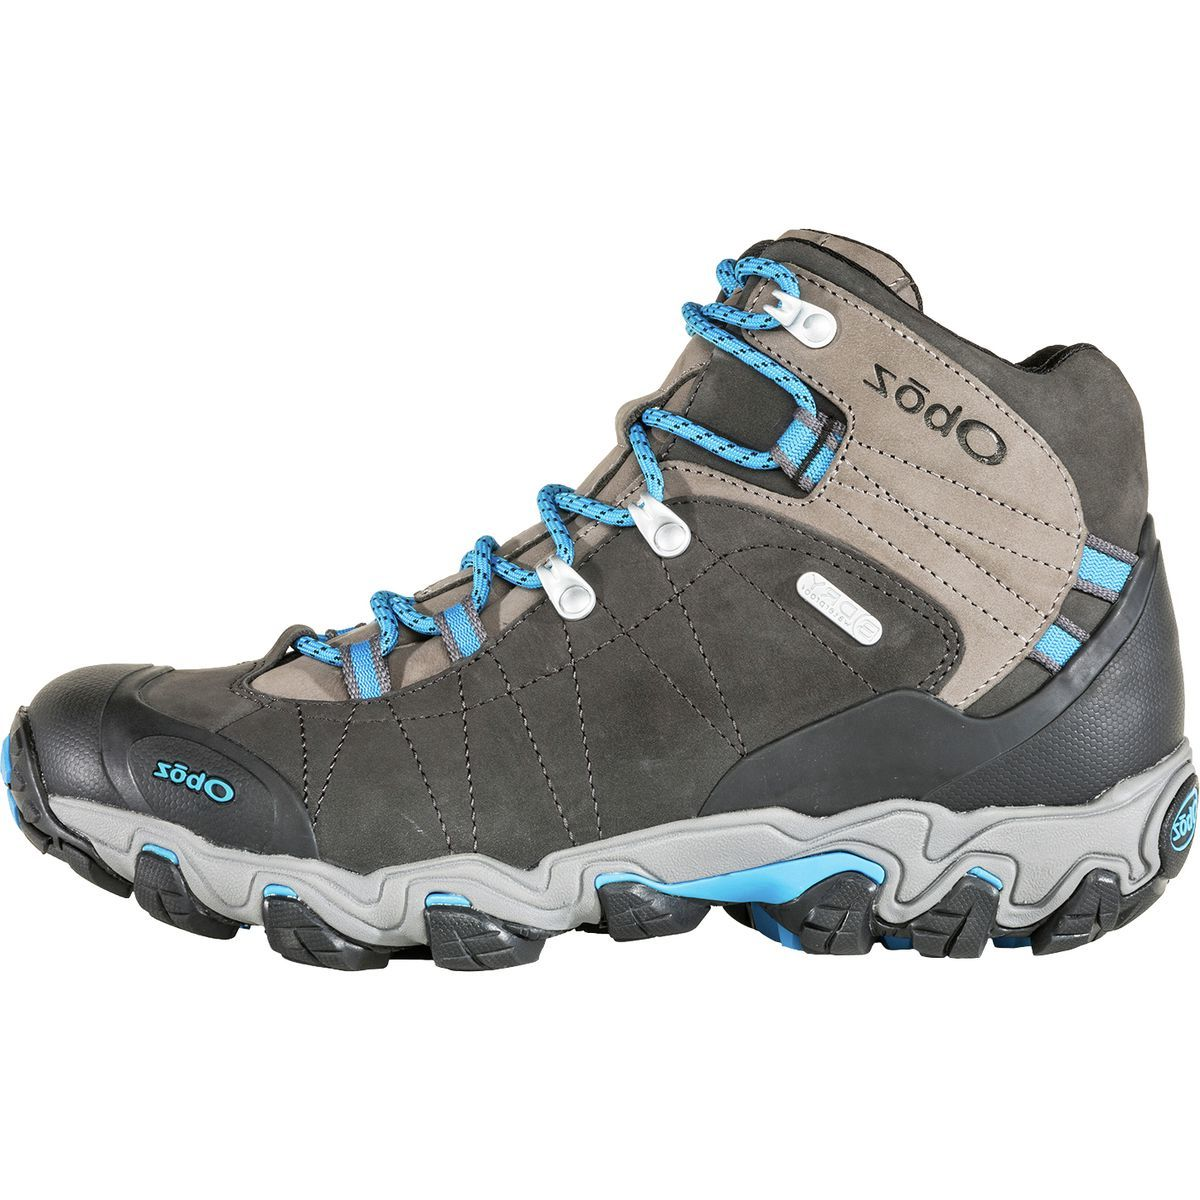 Oboz Bridger Mid B-Dry Hiking Boot - Men's